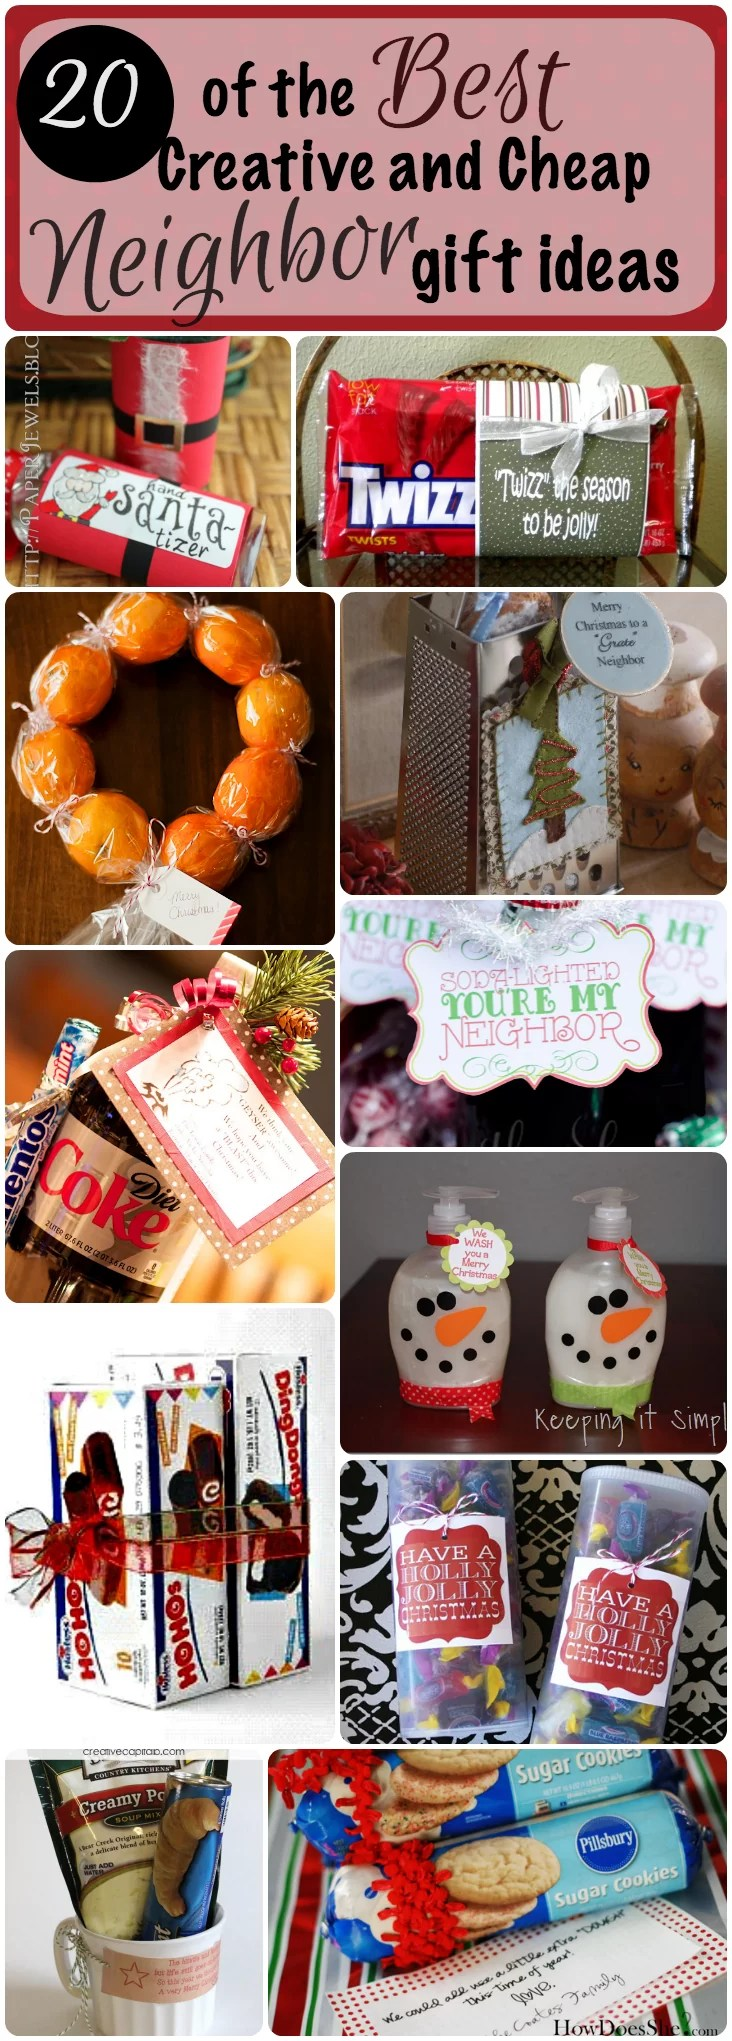 20 of the Best Creative and Cheap Neighbor Gifts for Christmas